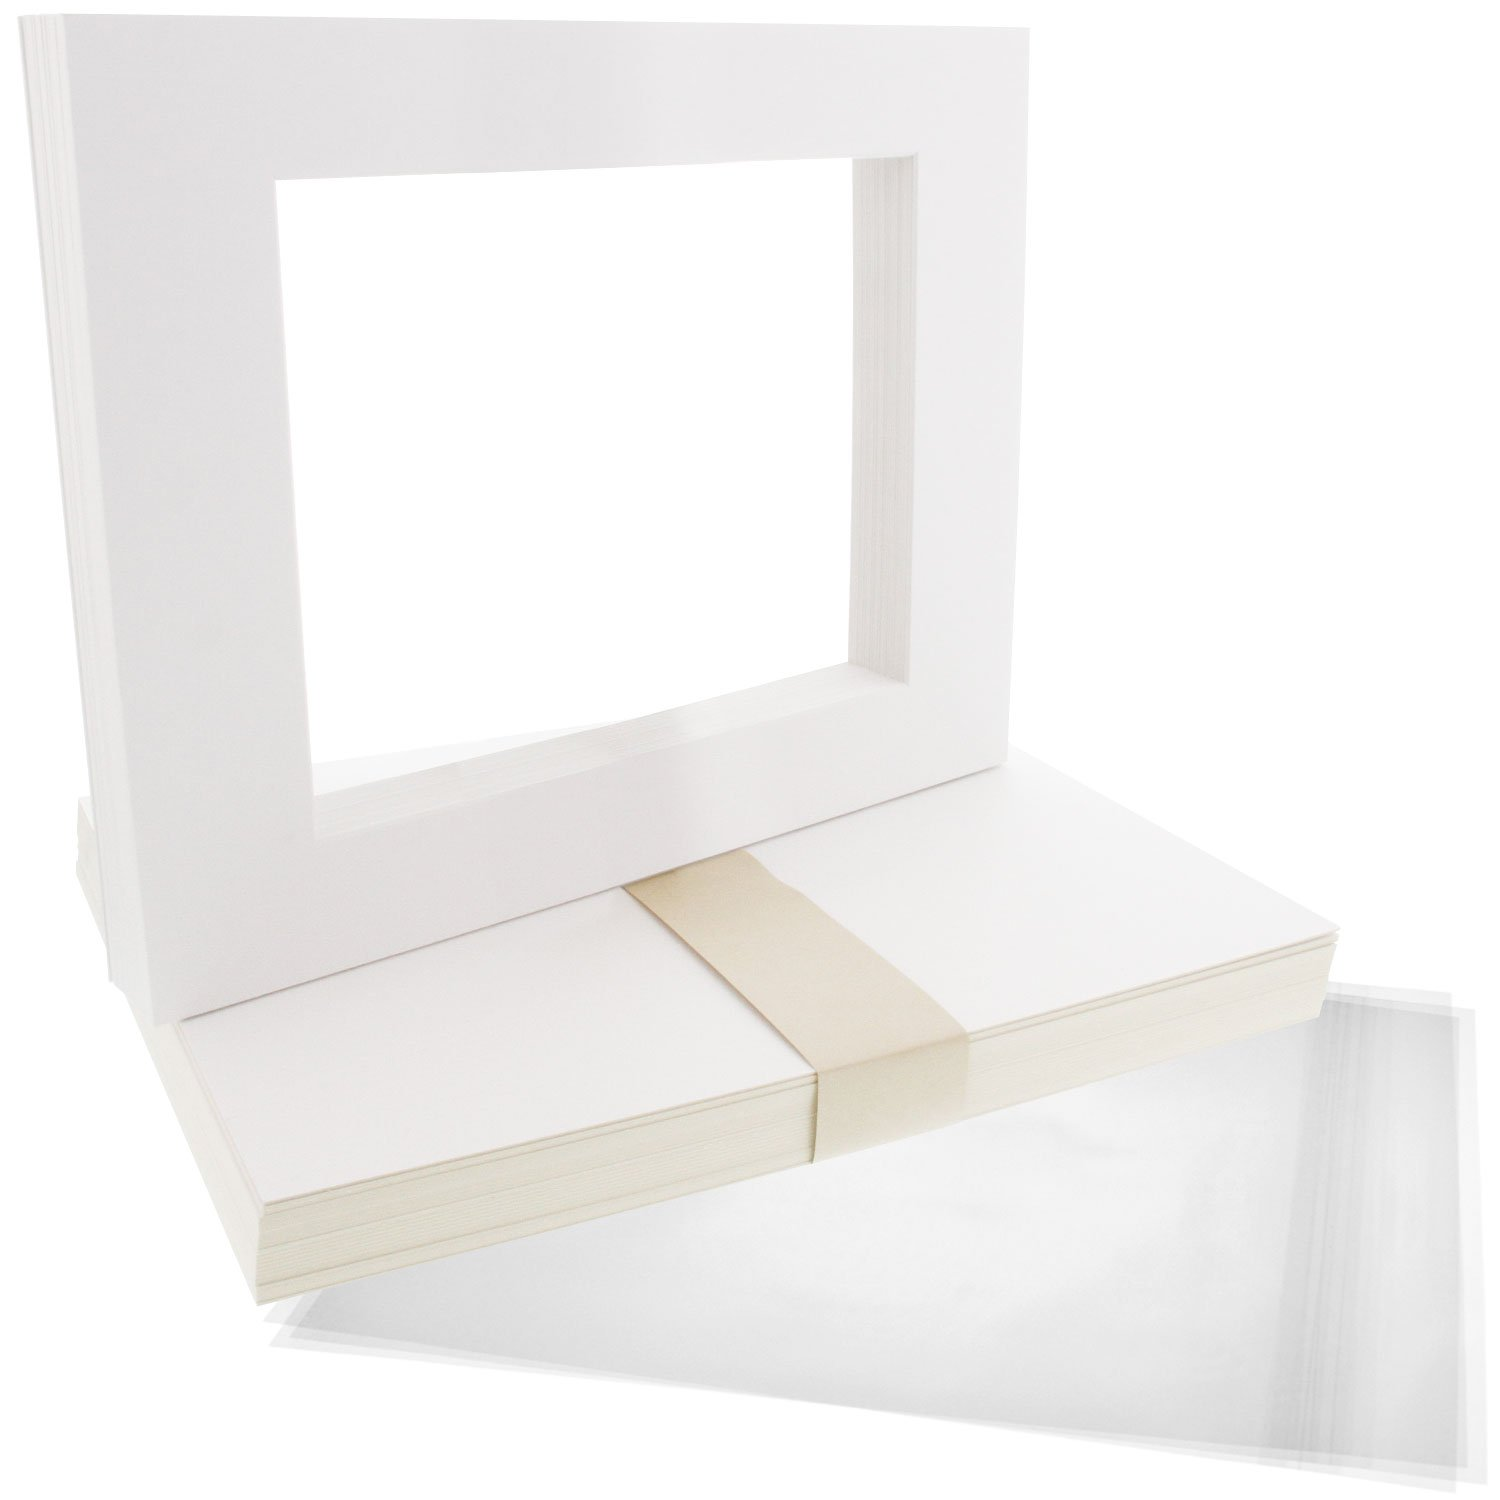 US Art Supply Art Mats Acid-Free Pre-Cut 5x7 White Picture Mat Matte Sets. Includes a Pack of 25 White Core Bevel Cut Mattes for 4x6 Photos, Pack of 25 Backers & 25 Clear Sleeves Bags